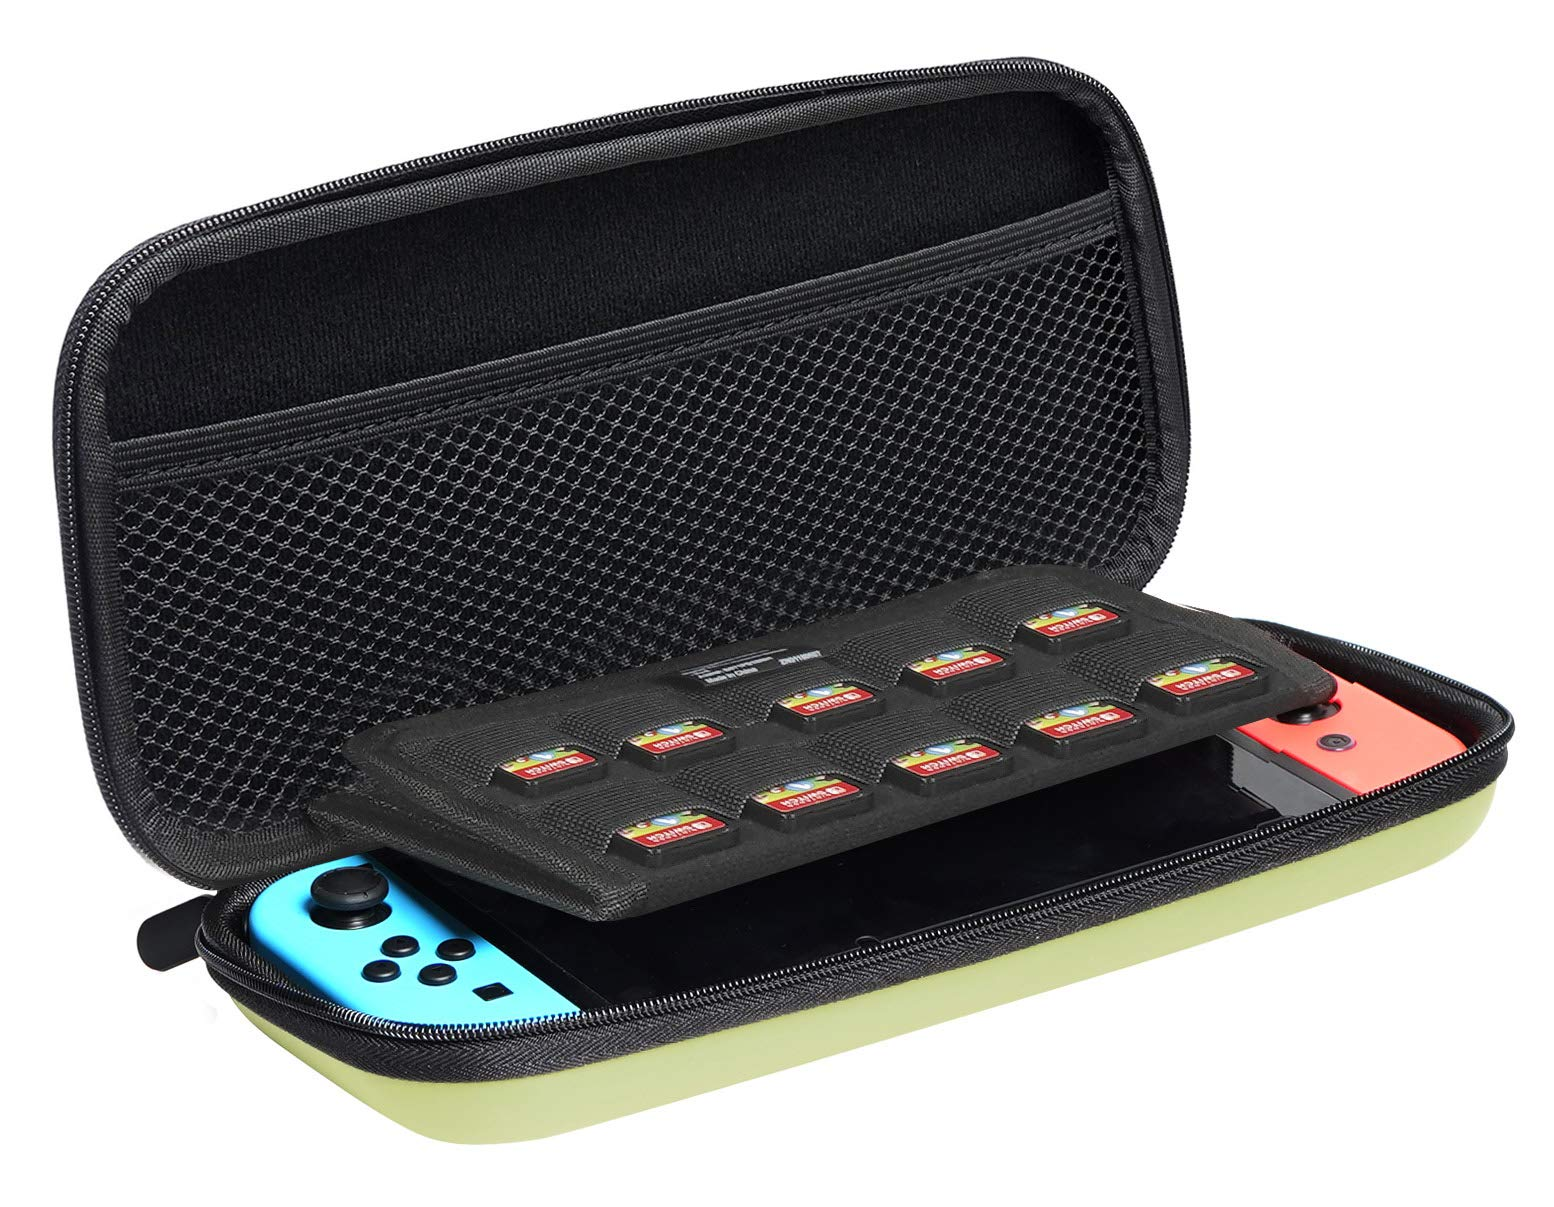 Amazon Basics Carrying Case for Nintendo Switch and Accessories - 10 x 2 x 5 Inches, Neon Yellow